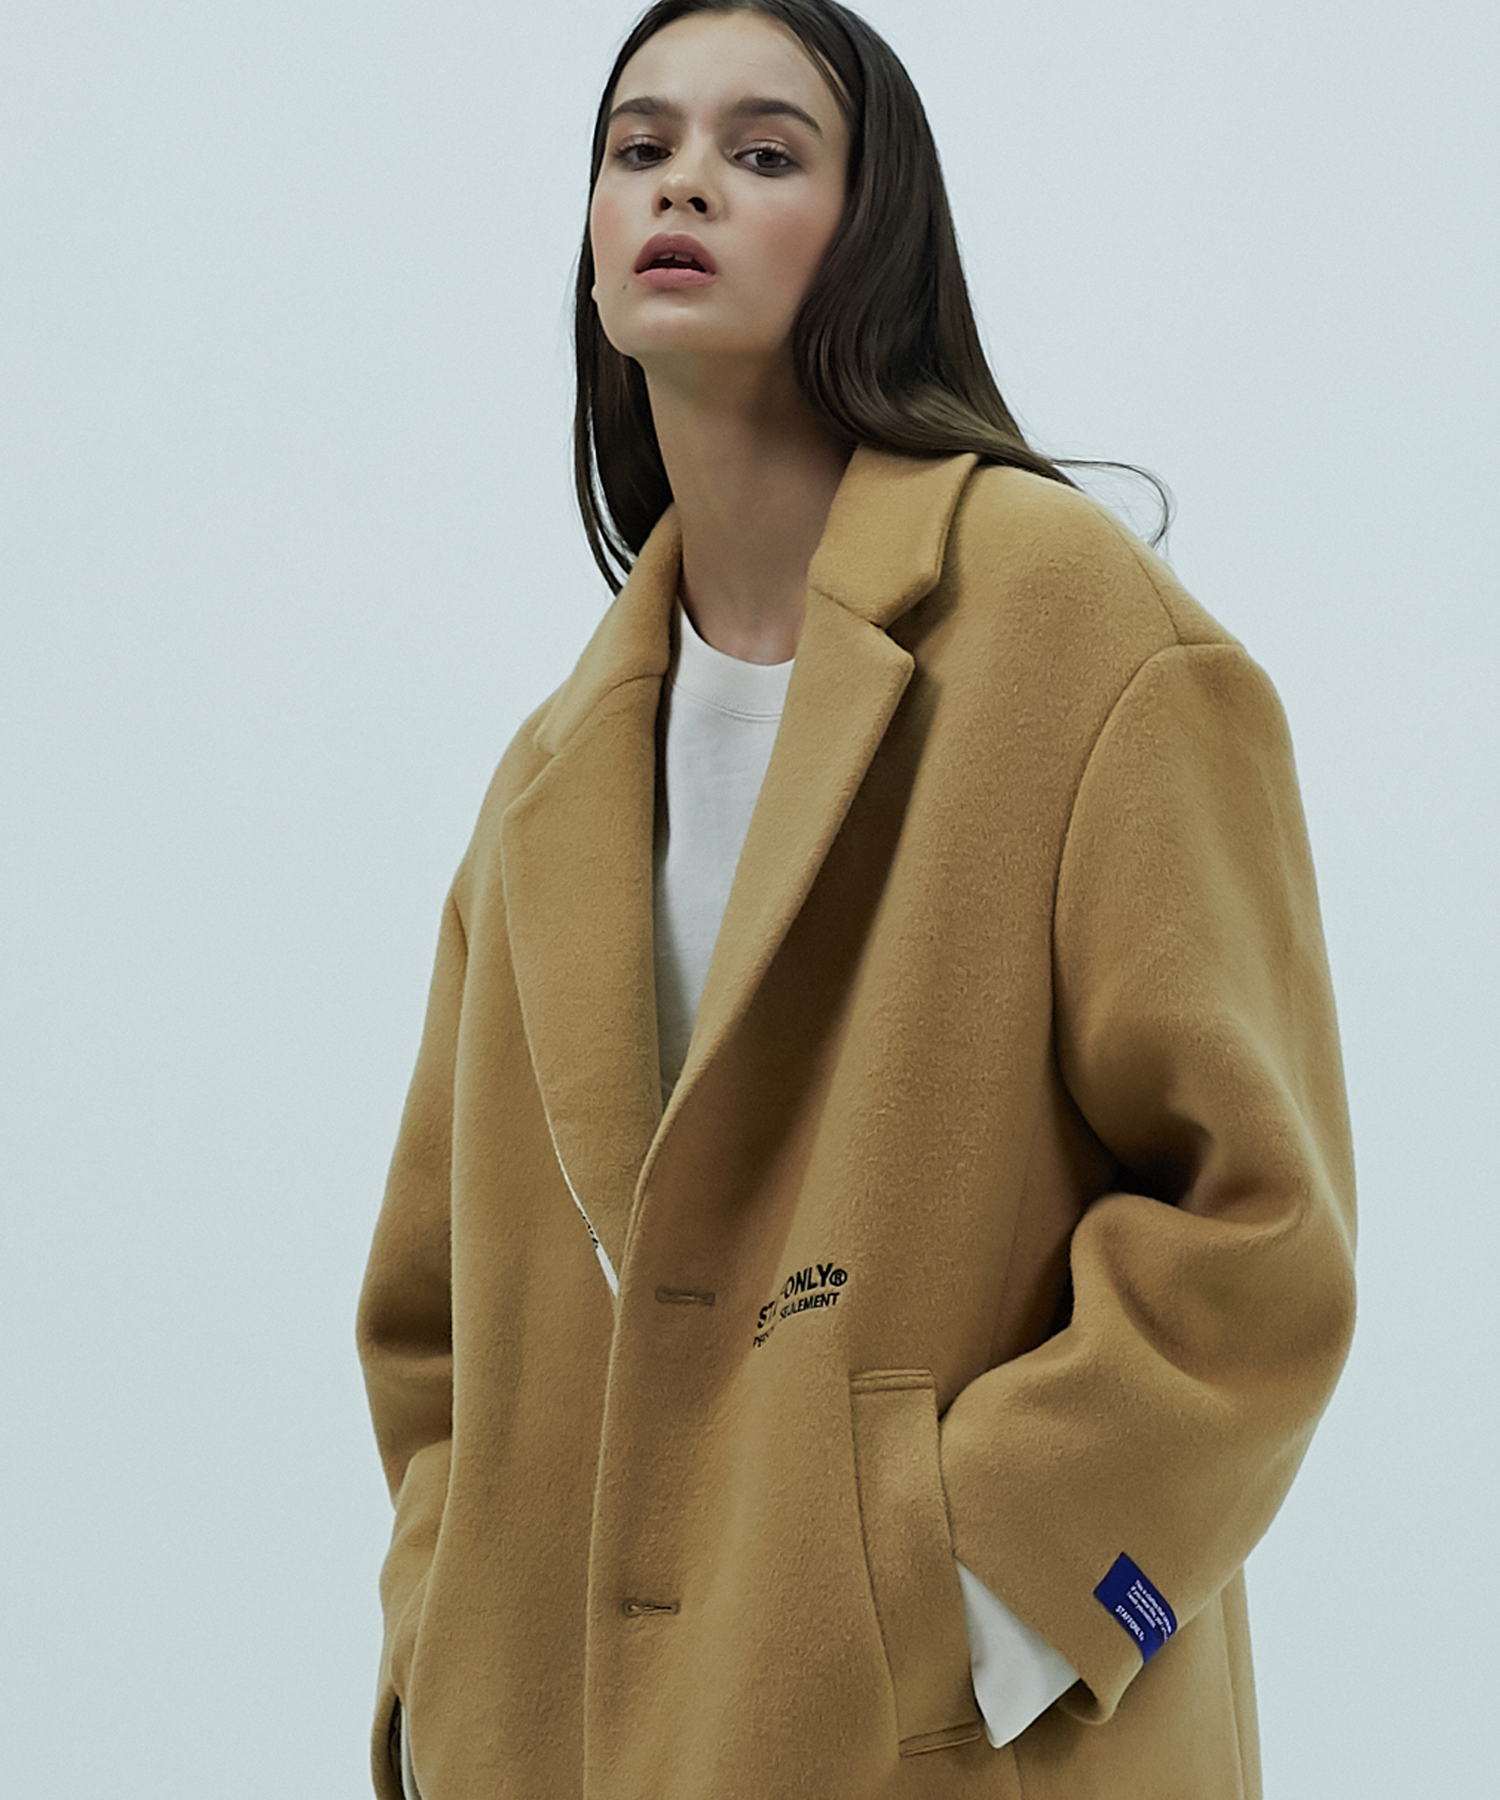 [스텝온리]SHOELACE COAT (BEIGE)